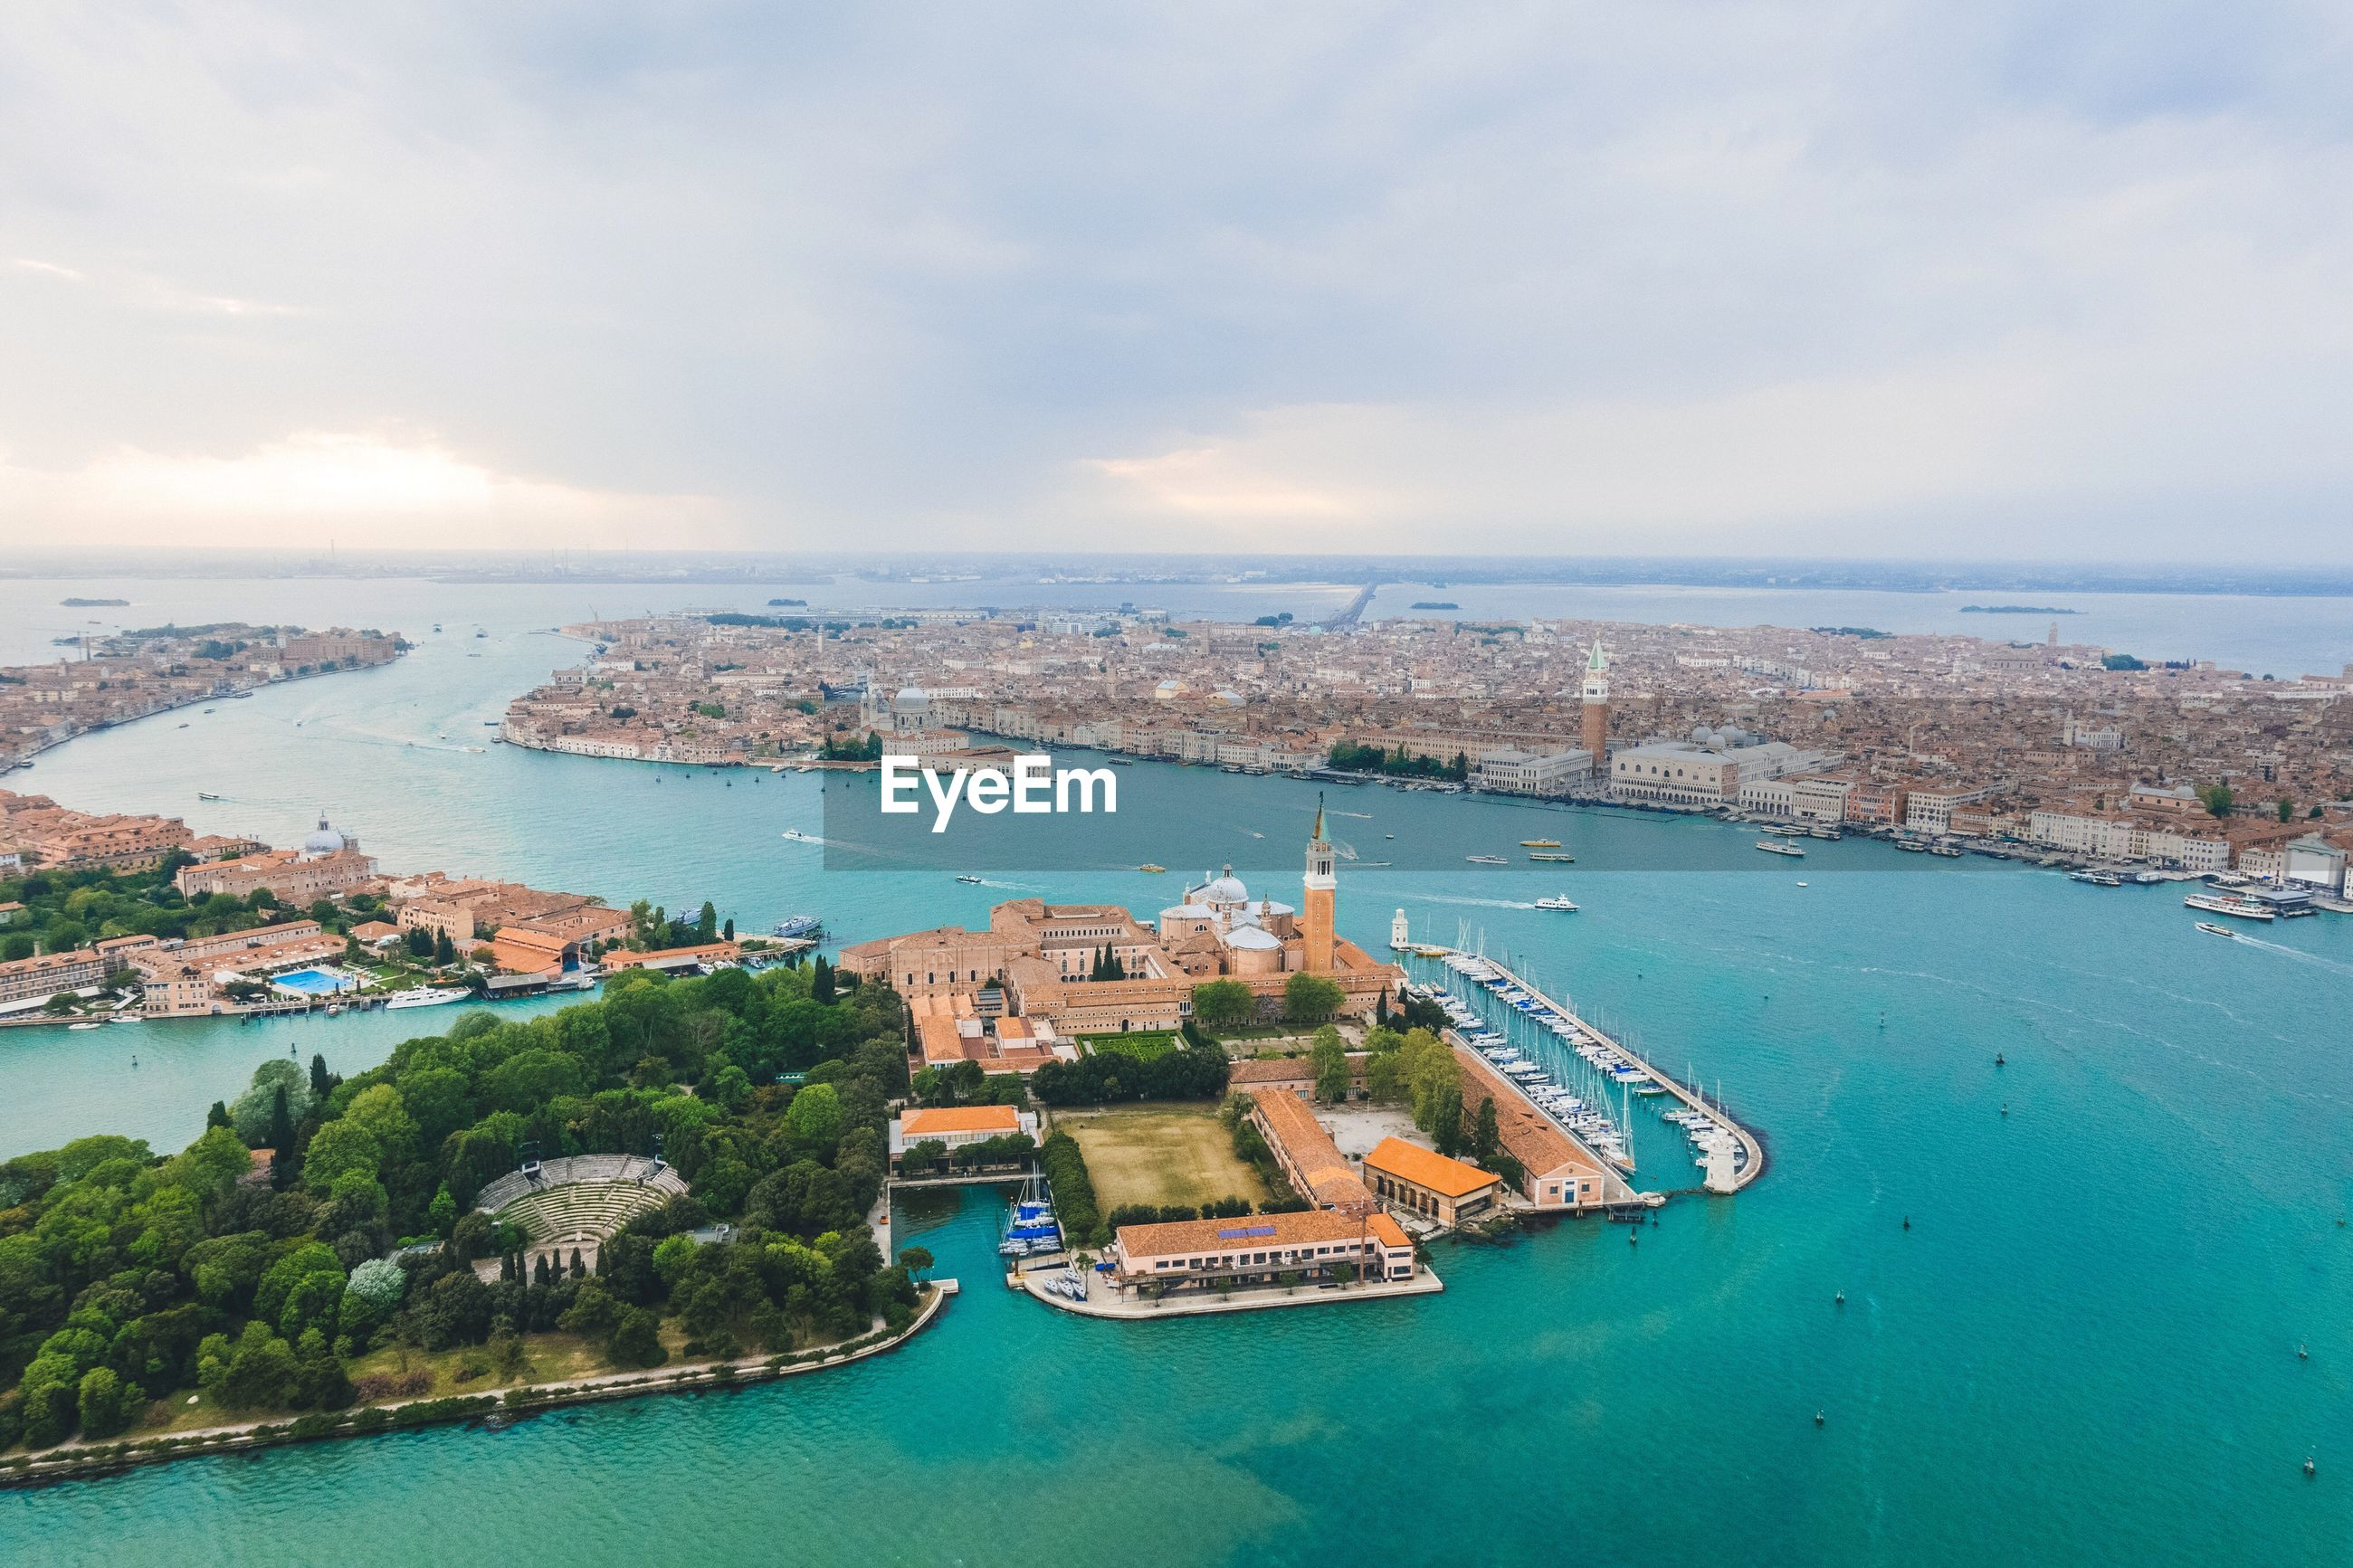 Aerial view of city and grand canal against sky